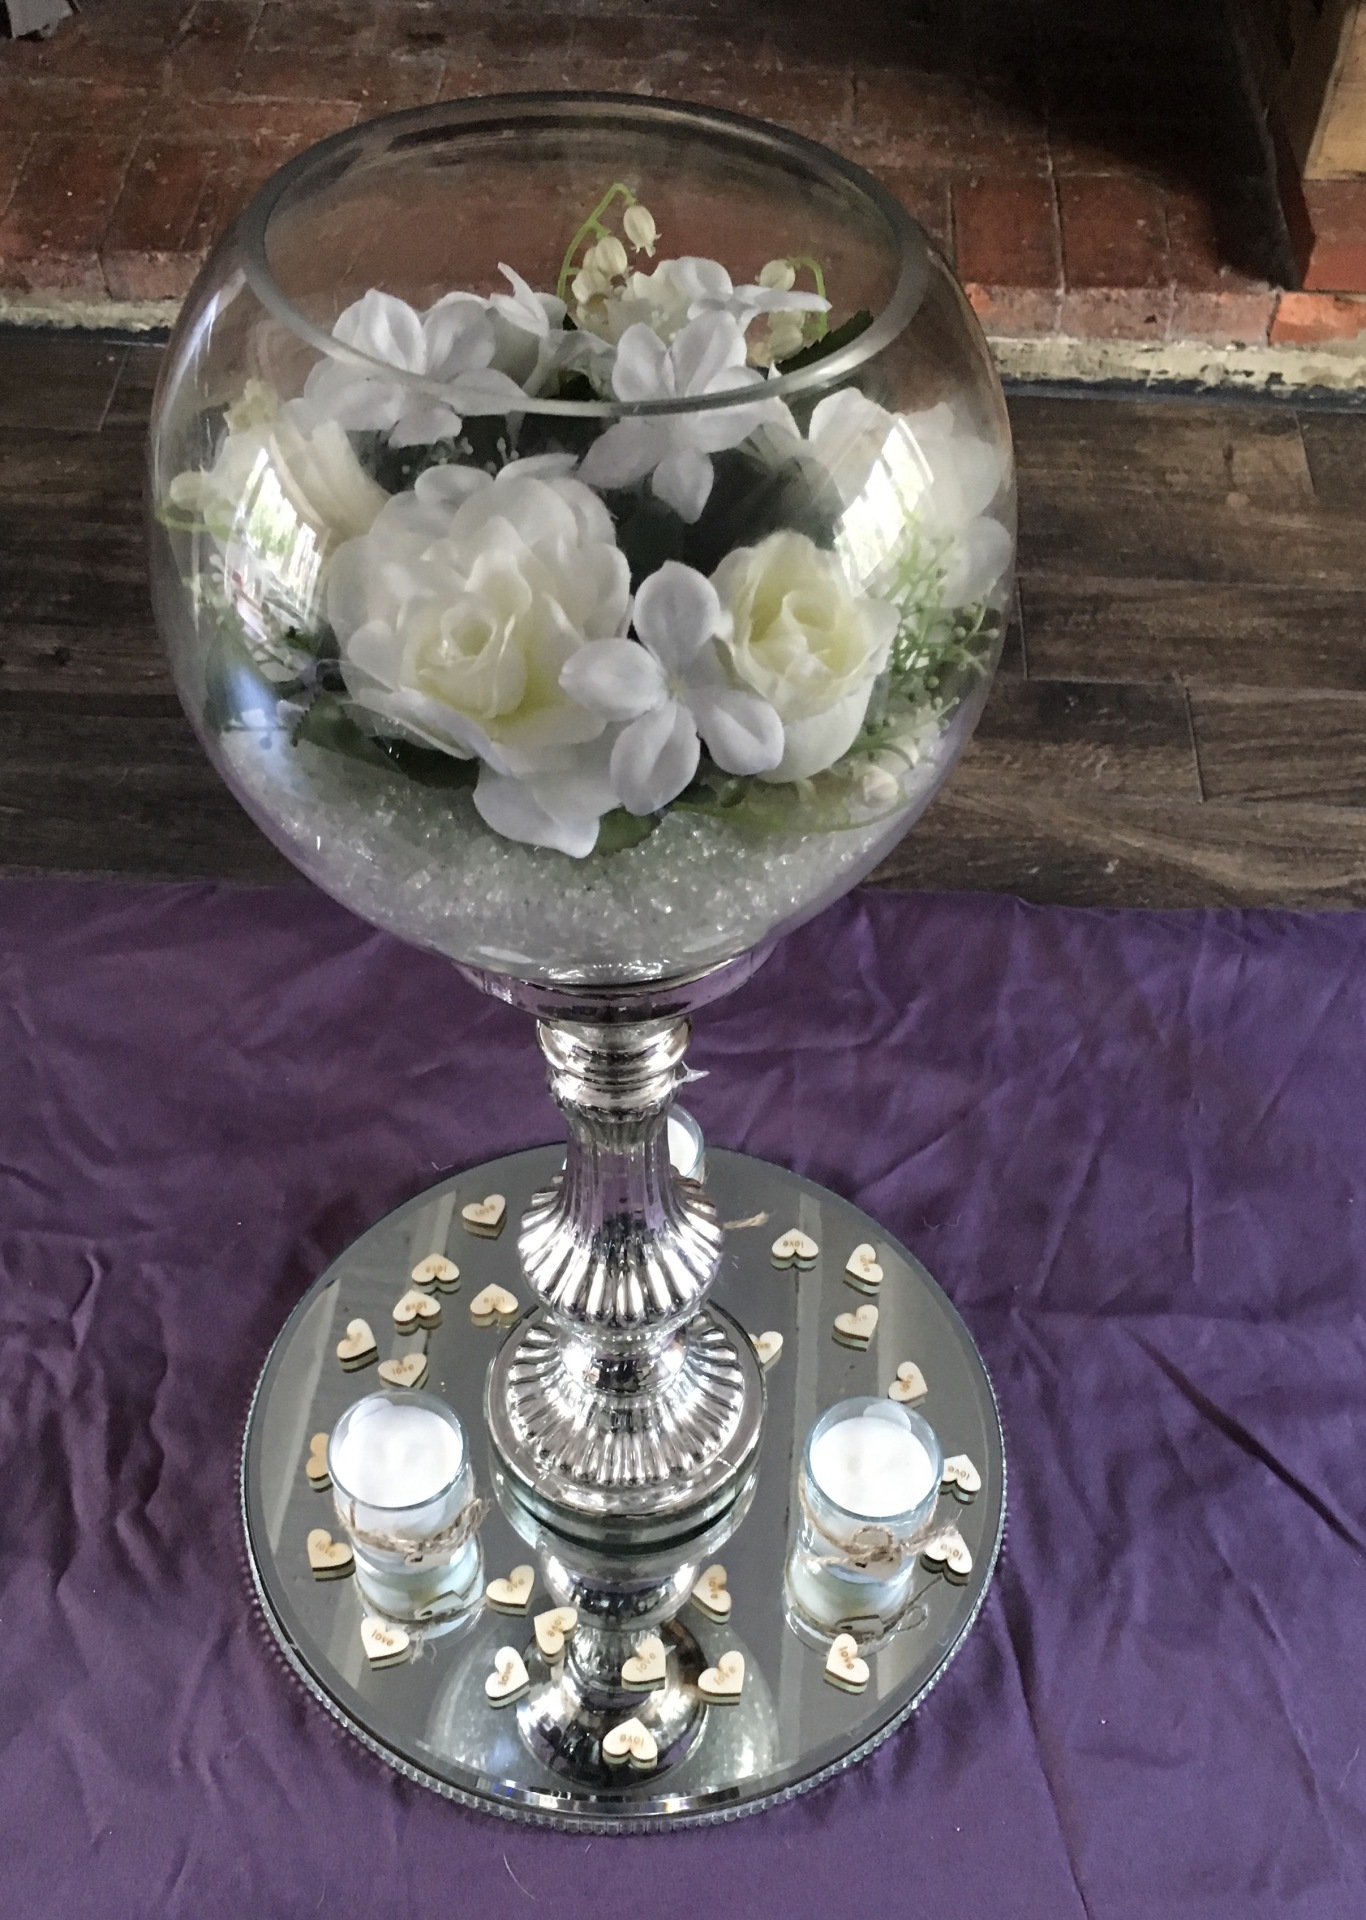 Fish bowl supplied with stand, mirrored plate, shabby chic votives, scatter hearts & white flowers